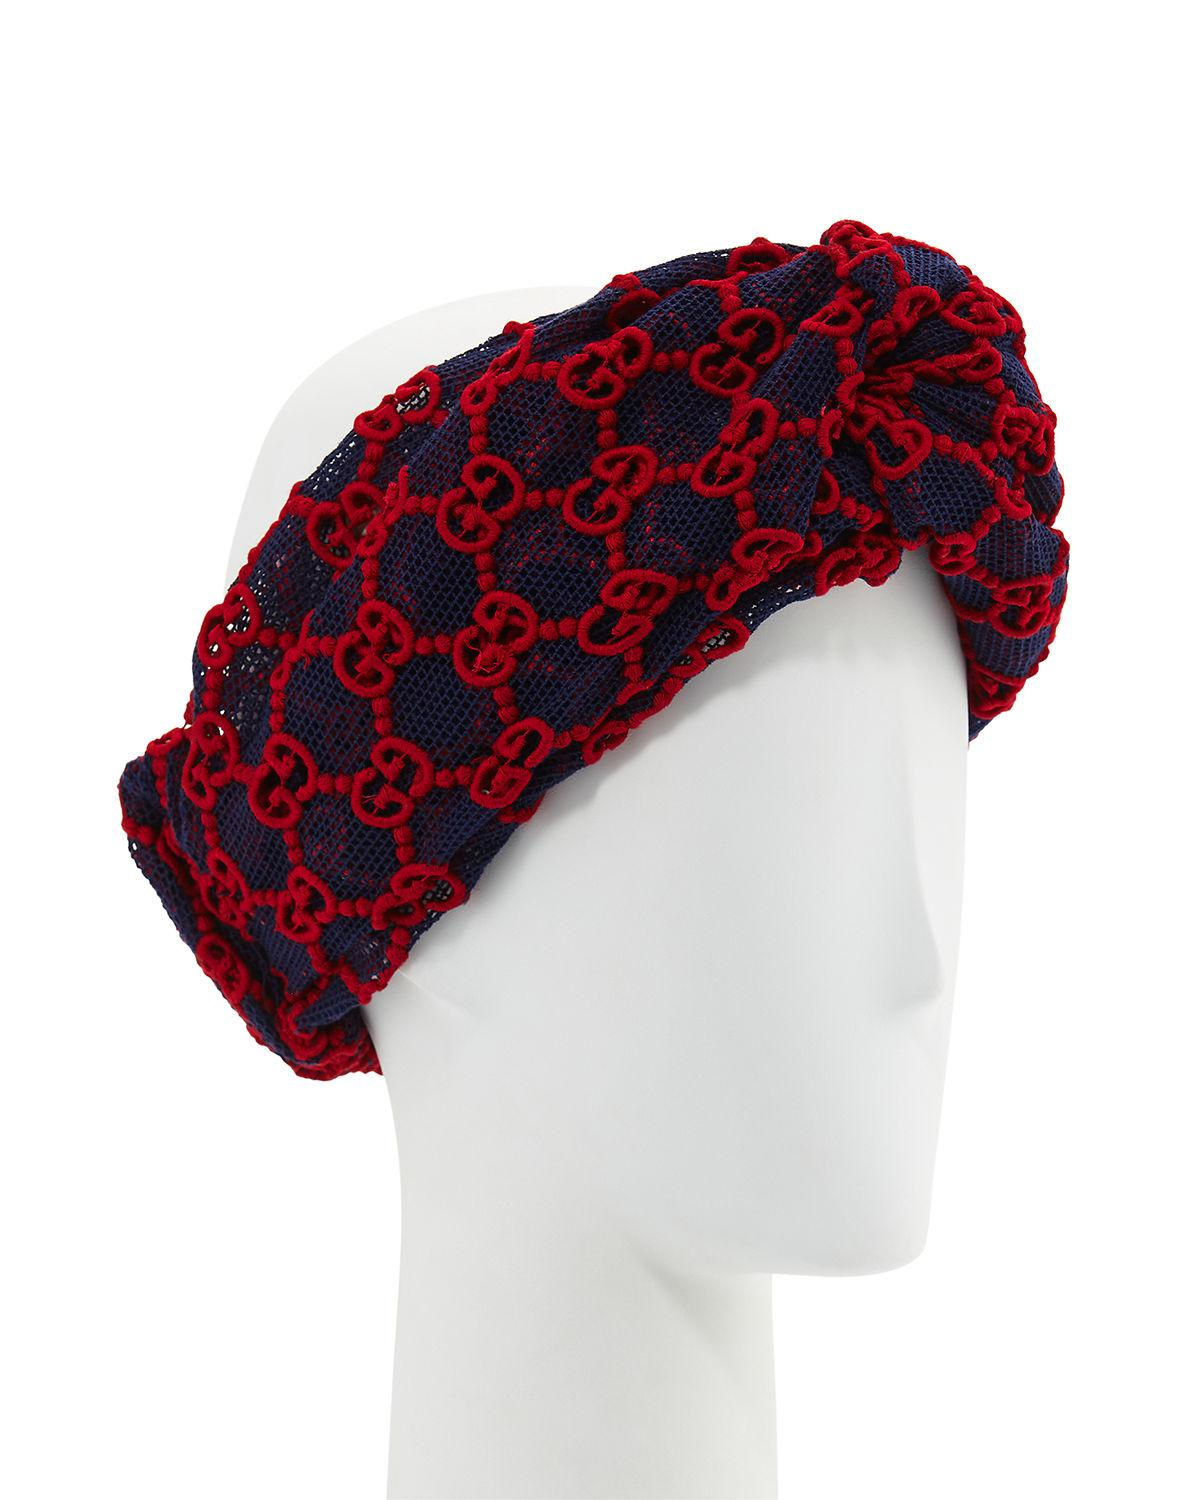 654d6e075be Gucci Macramé Lace GG Headband in Red - Lyst